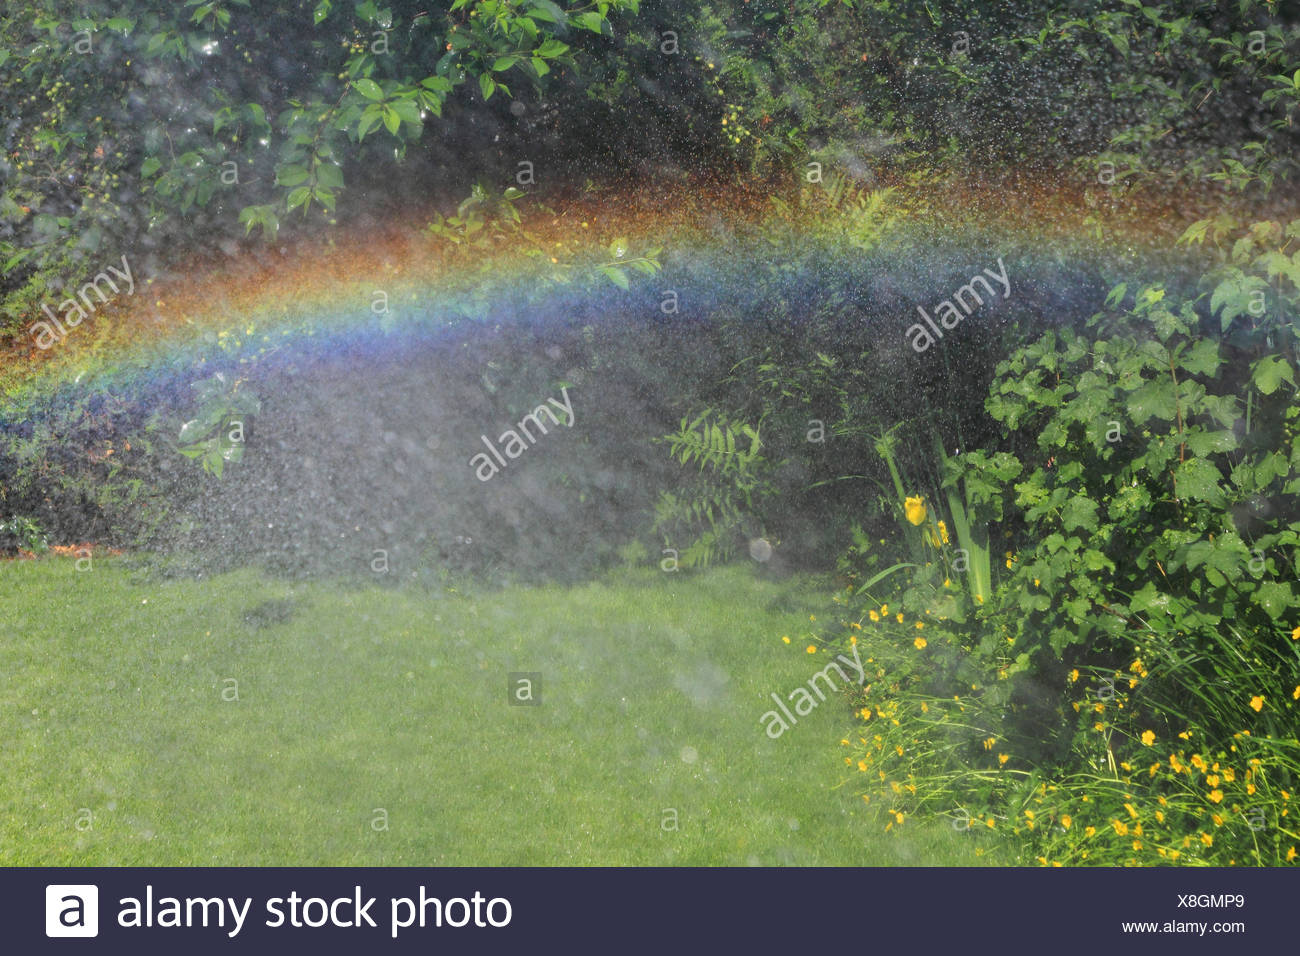 Rainbows in the garden, - Stock Image